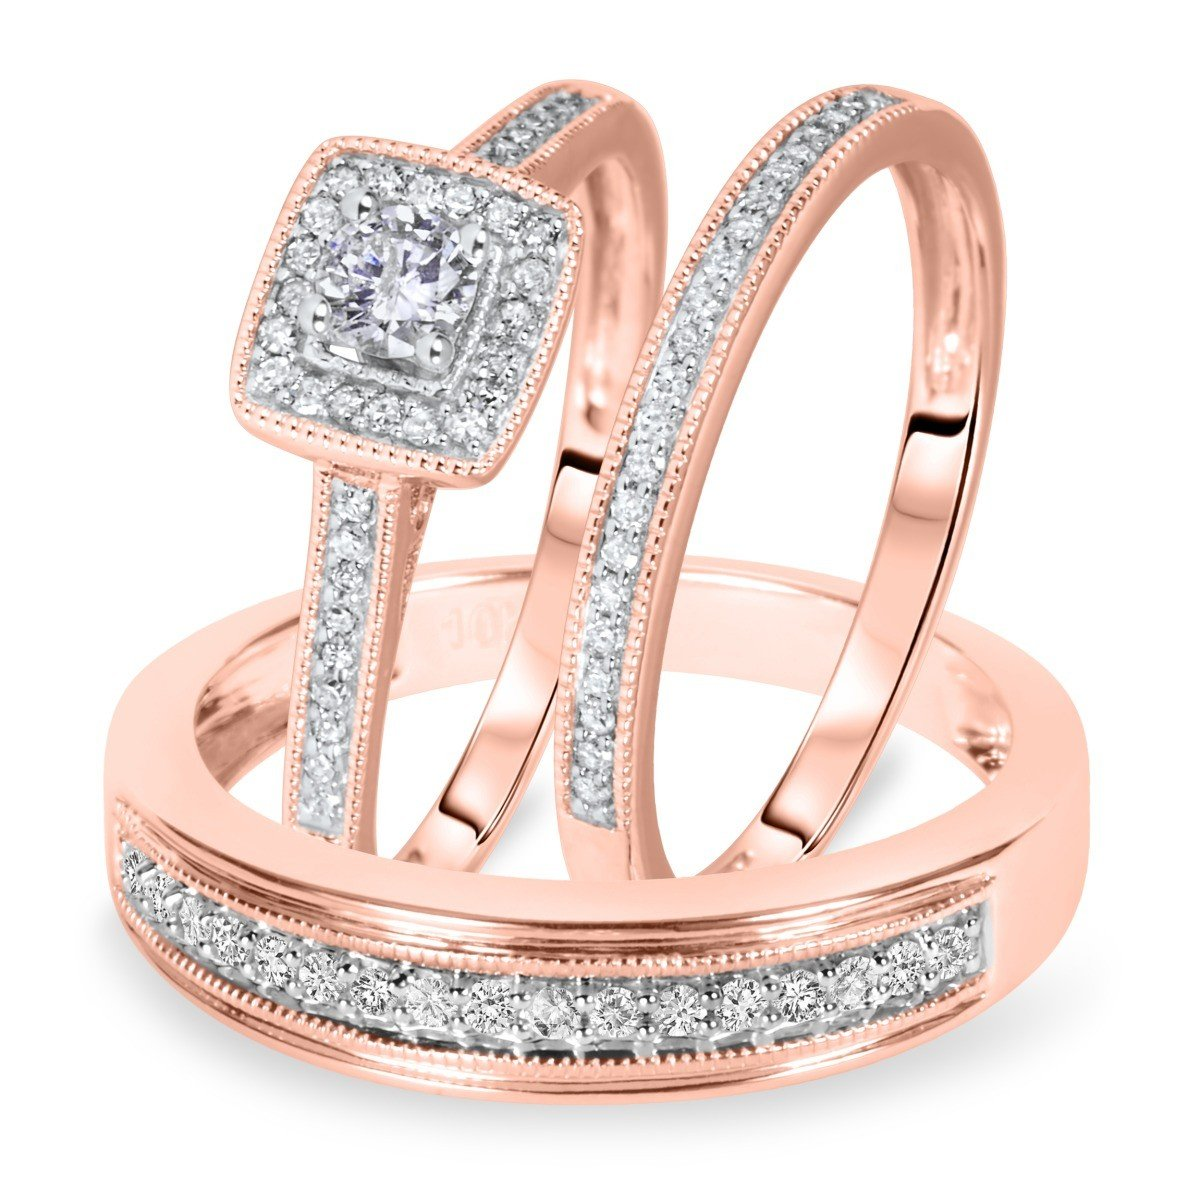 Smjewels 1/2 Carat T.W. Round Cut Diamond Matching Trio Wedding Ring Set 14K Rose Gold Fn